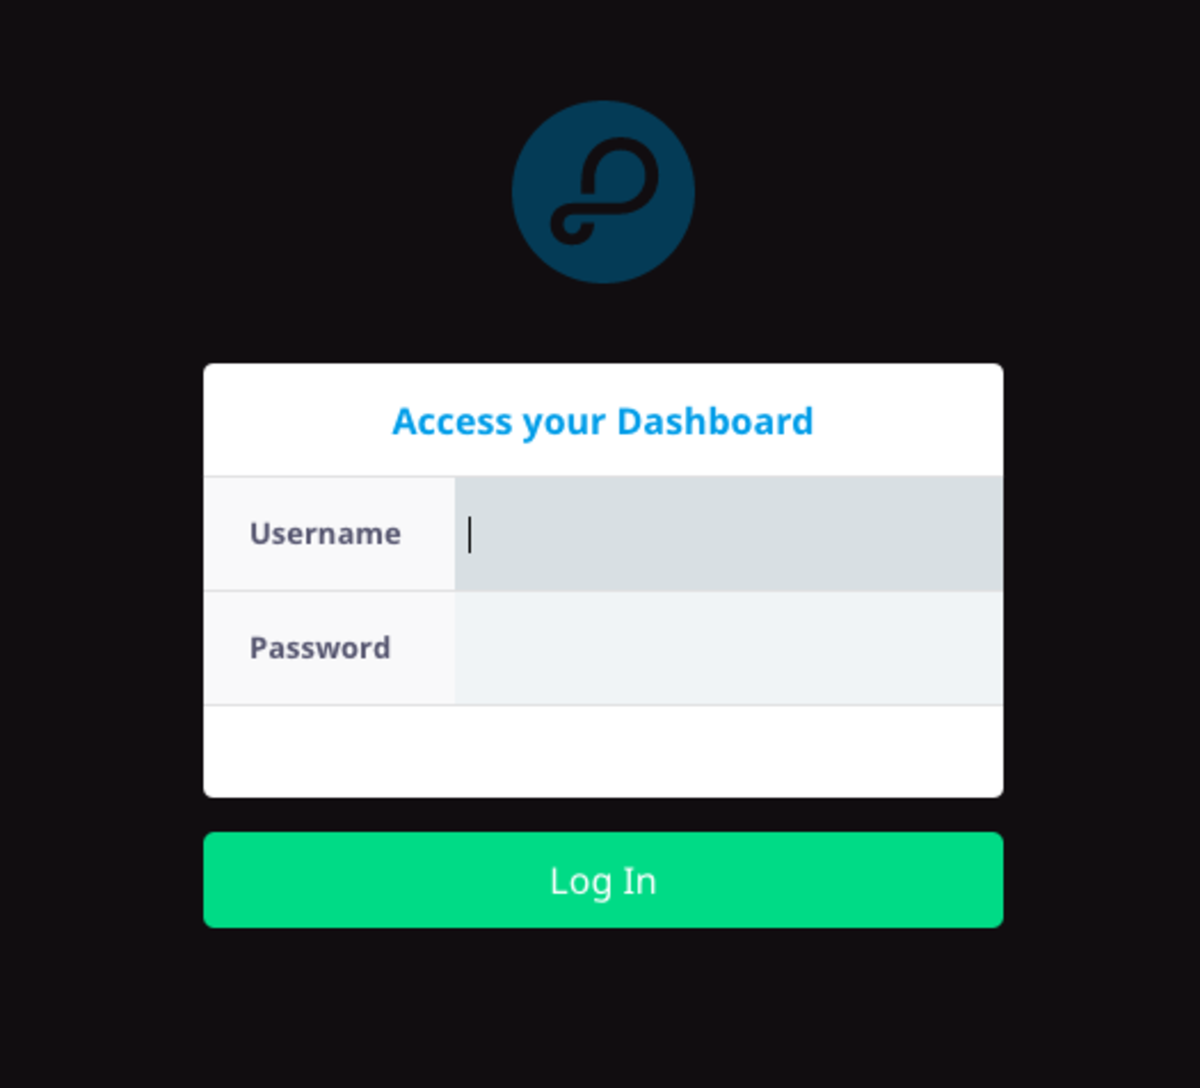 The Parse Dashboard Login window